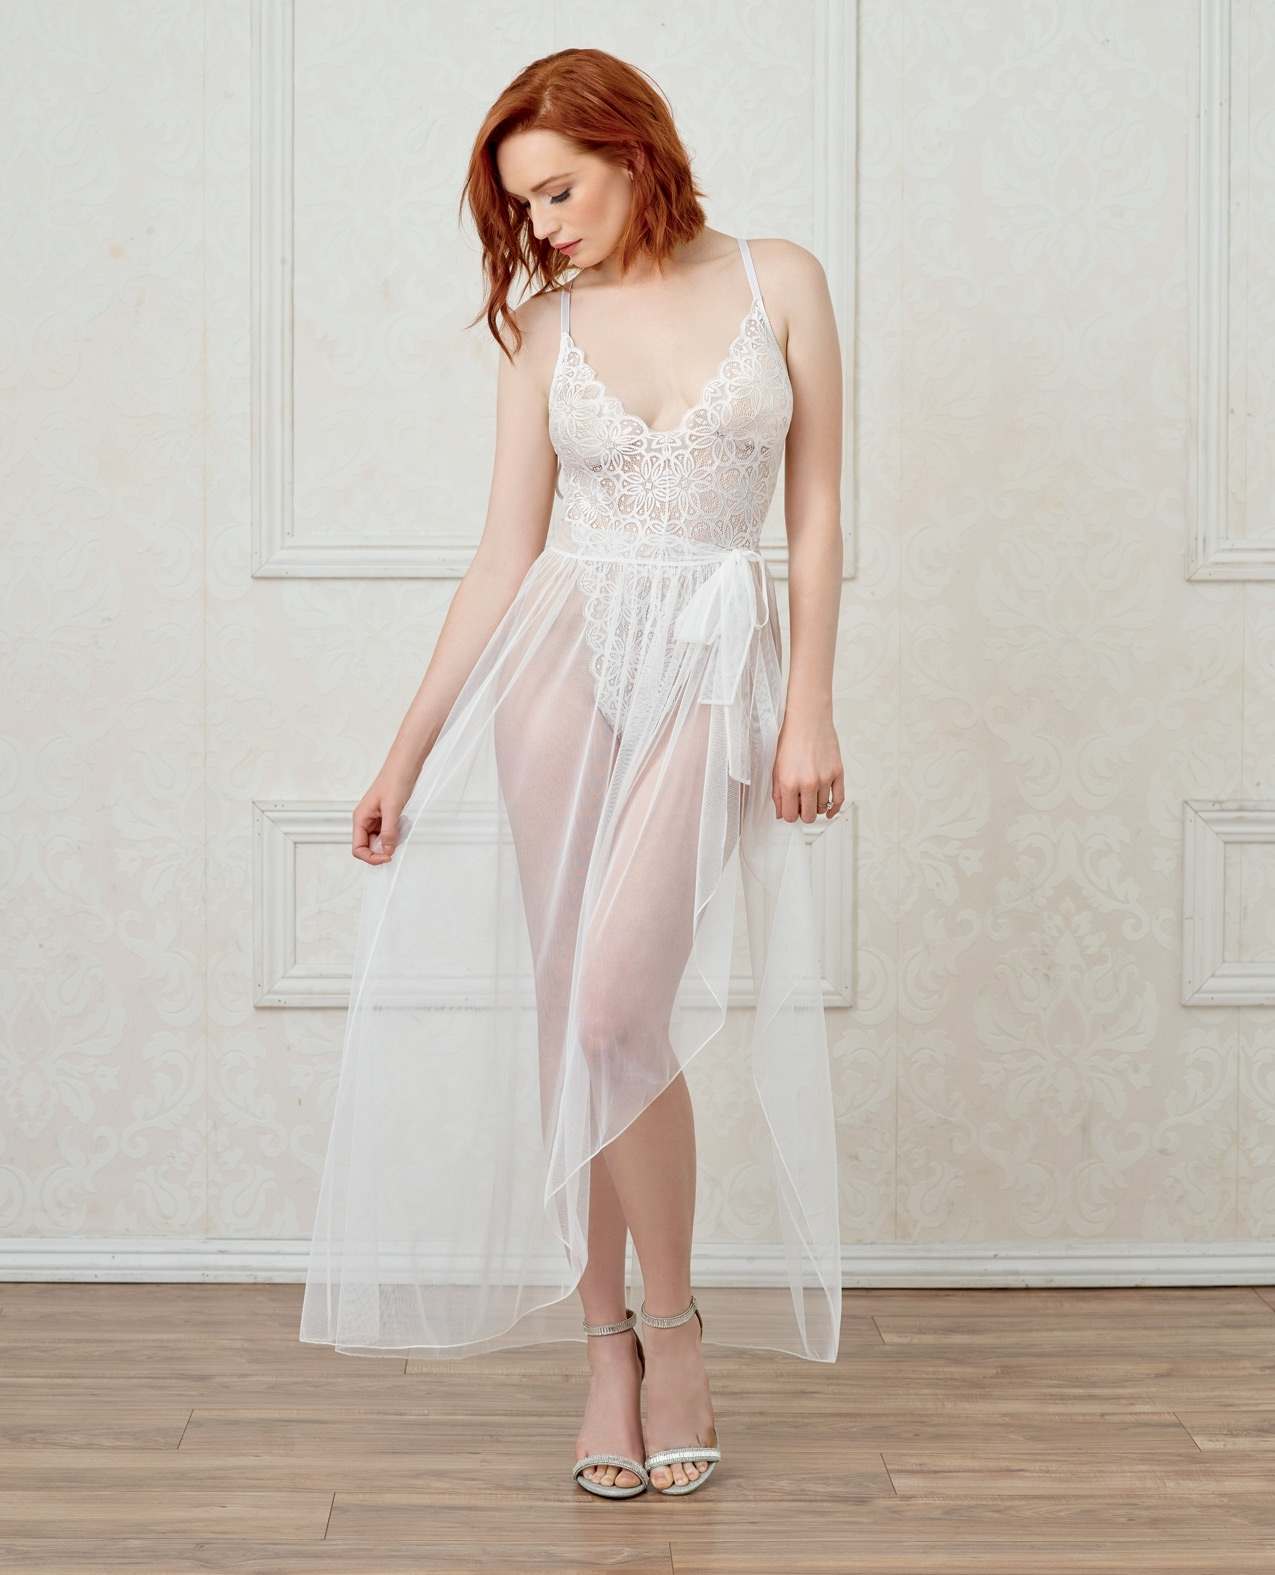 Stretch Lace Teddy & Sheer Mesh Maxi Skirt w/Adjustable Straps & G-String White LG